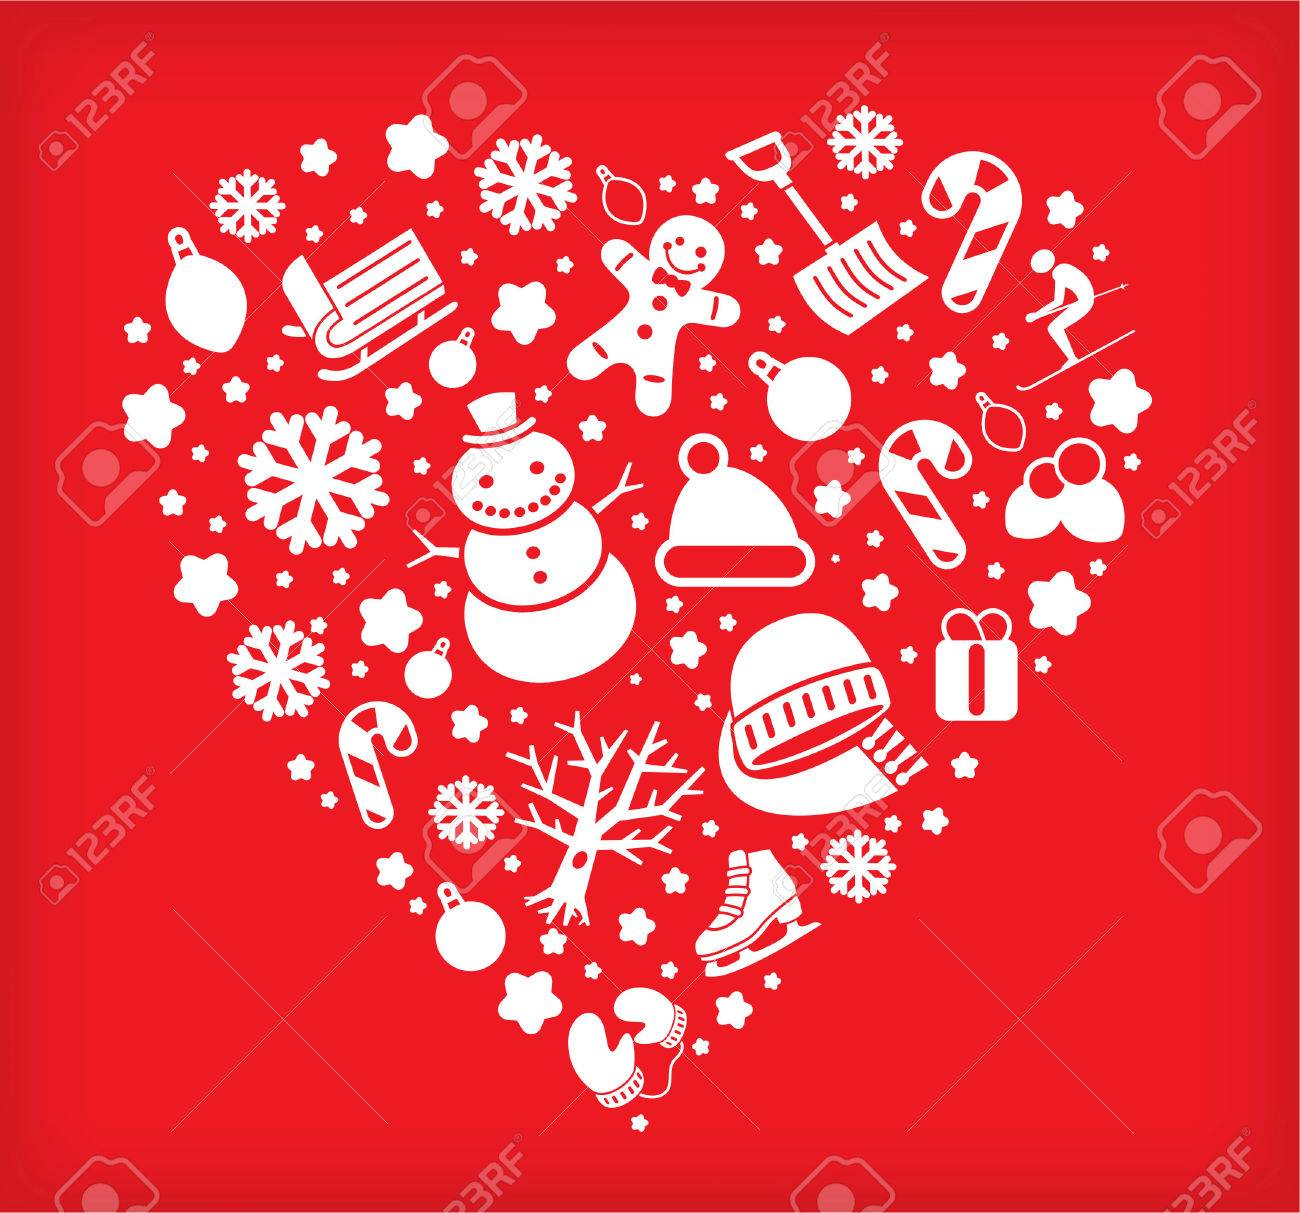 Christmas Heart Vector.Christmas Heart Shape Made With Winter Decoration Icons